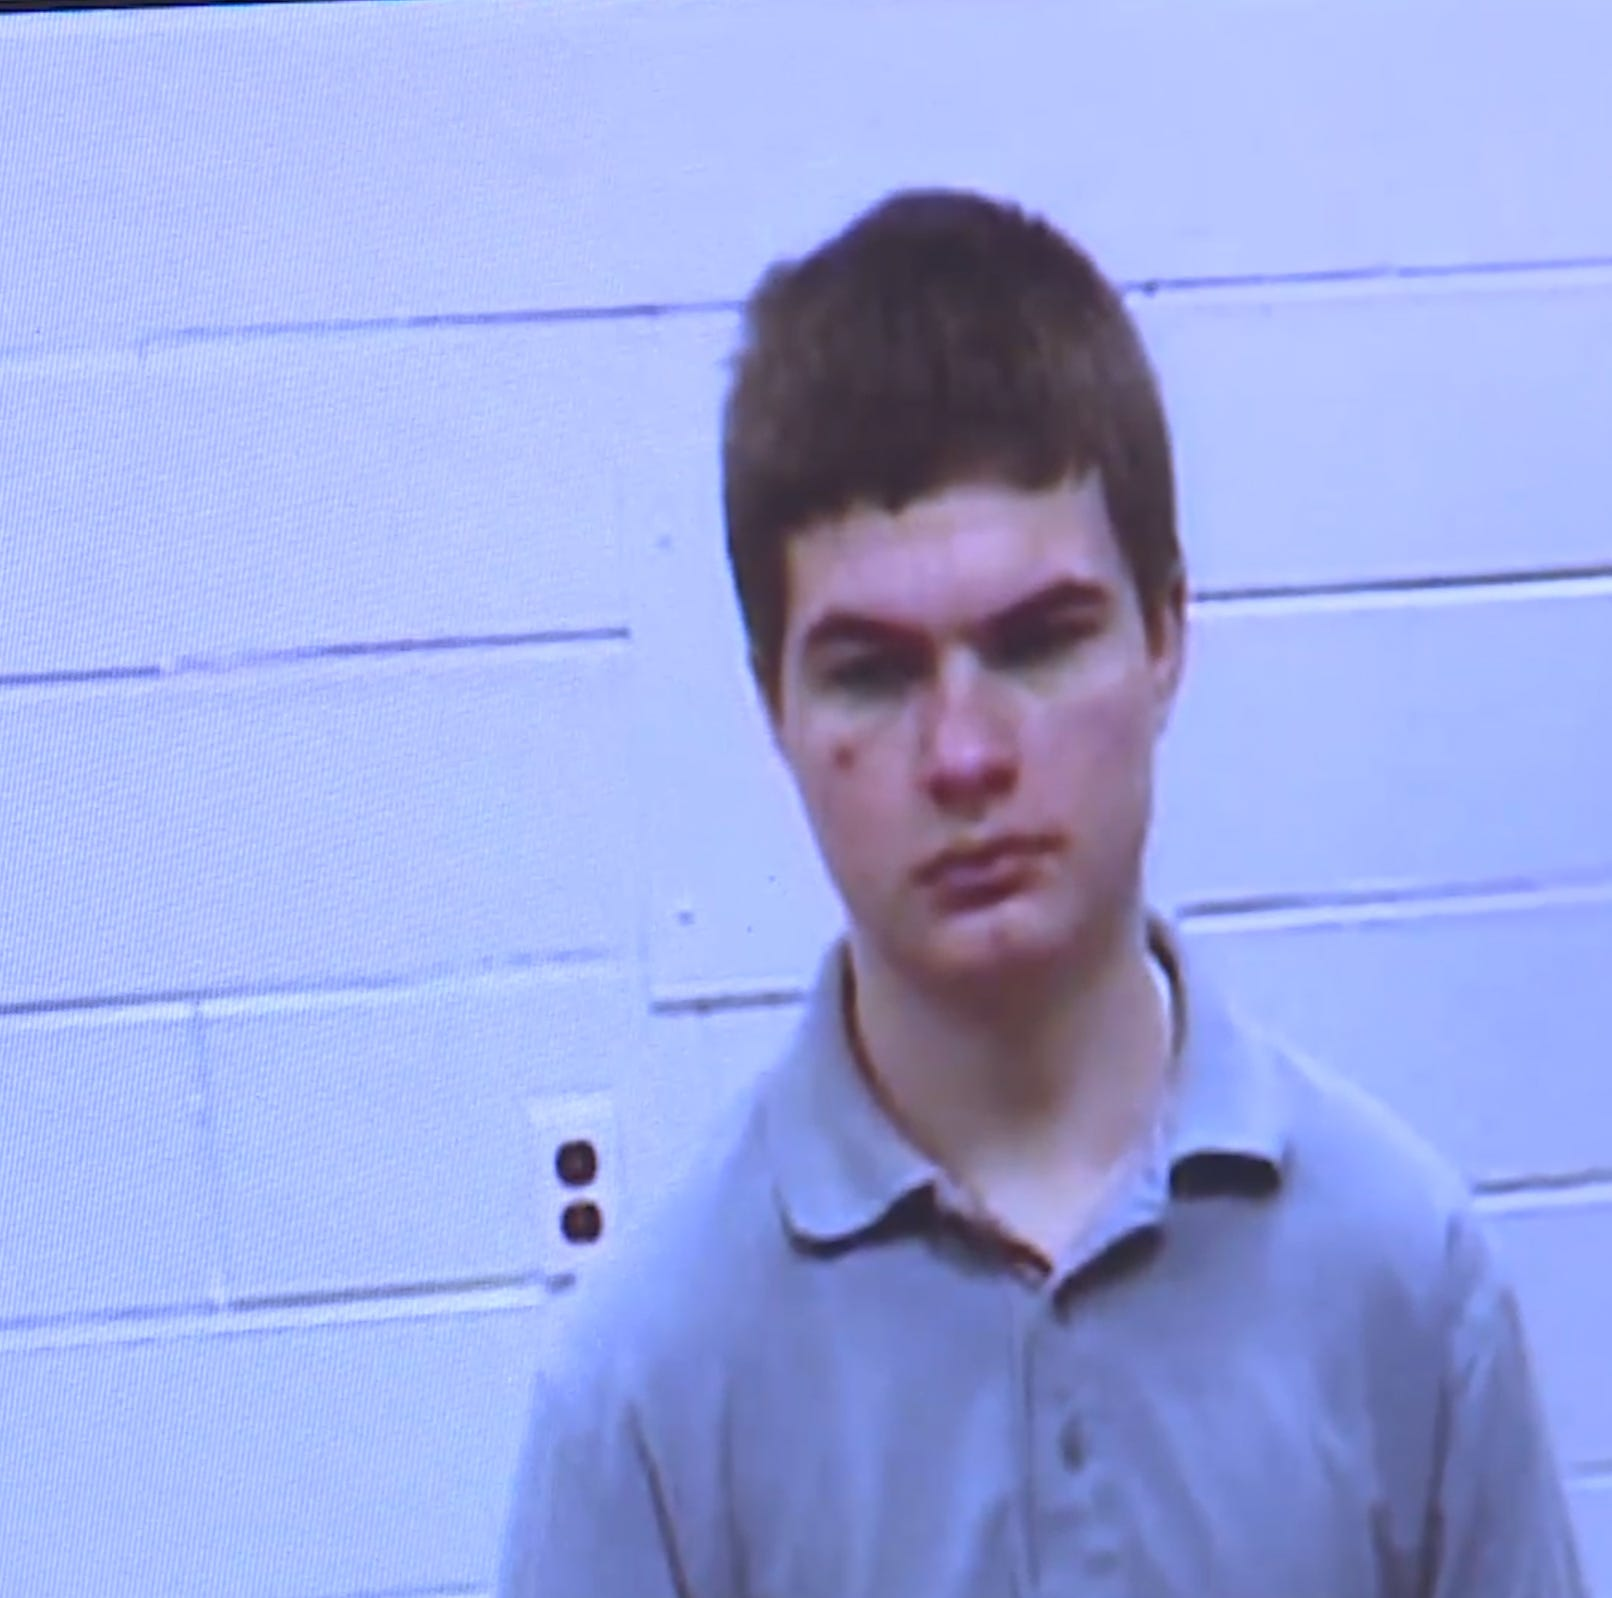 Teen in high school bomb case denied motion to dismiss charges